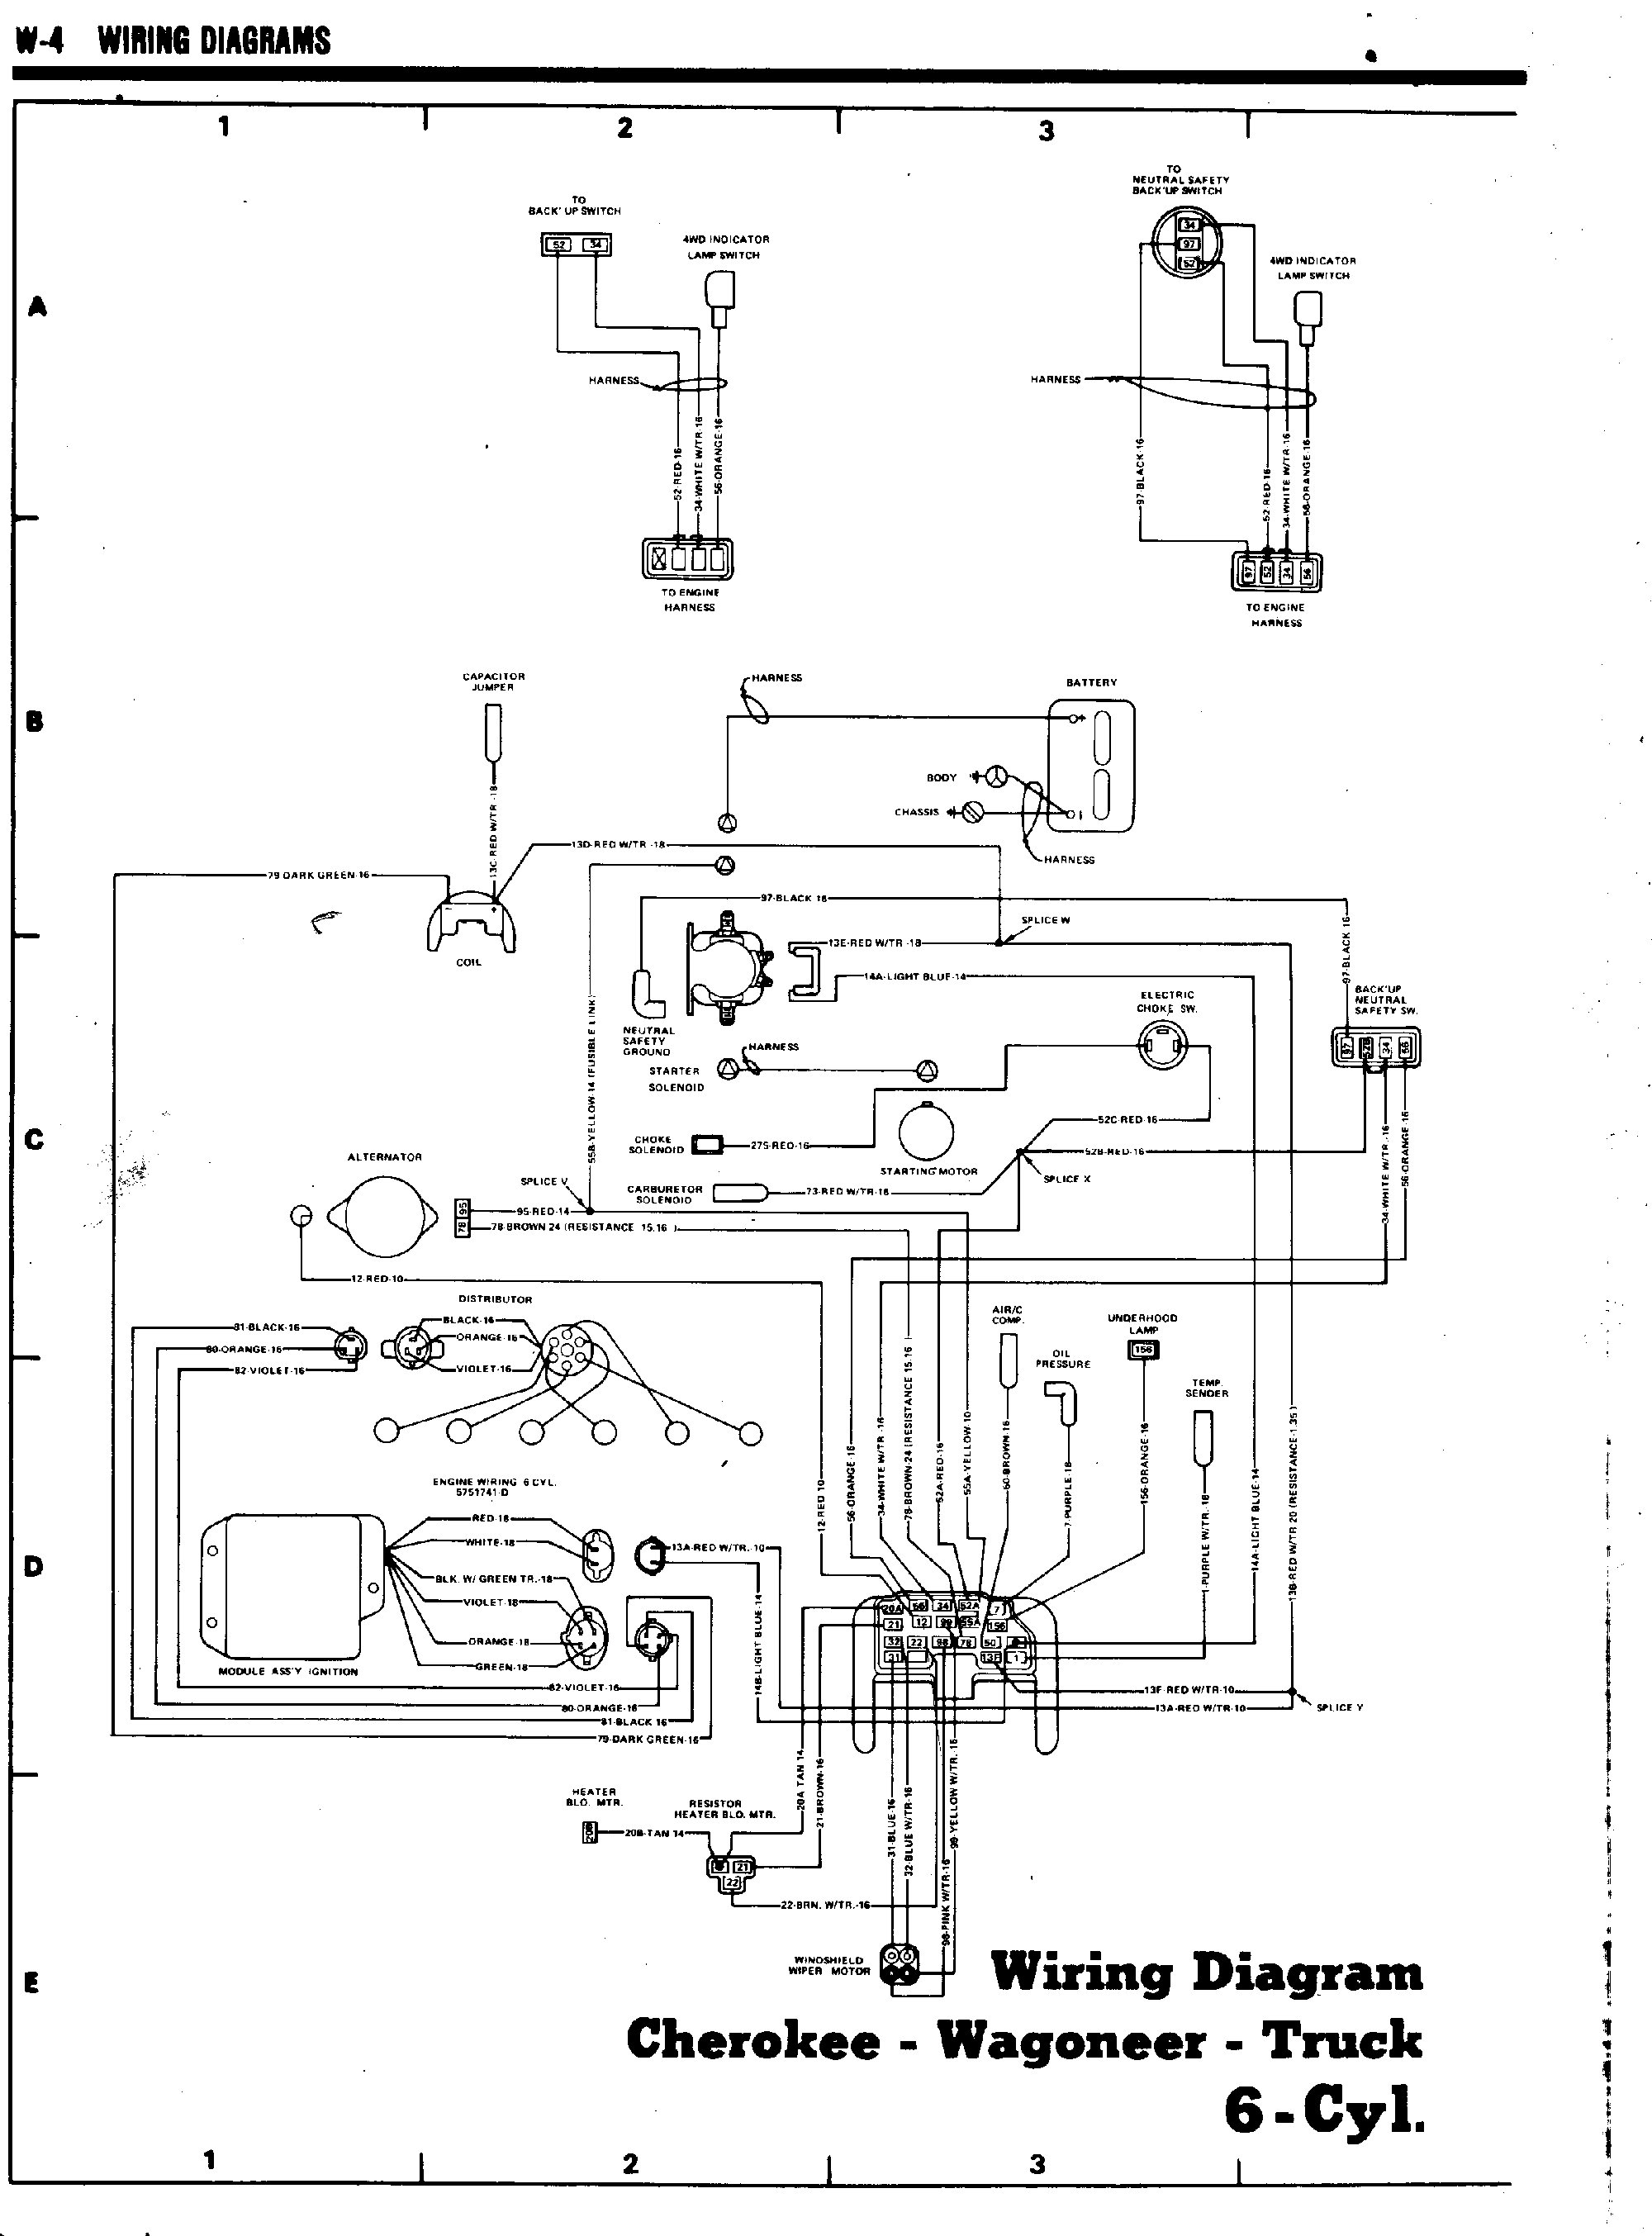 1980 jeep j 20 wiring diagram 1985 jeep j 20 wiring diagram 1980s jeep solenoid switch third wire post wtf? - s-10 forum